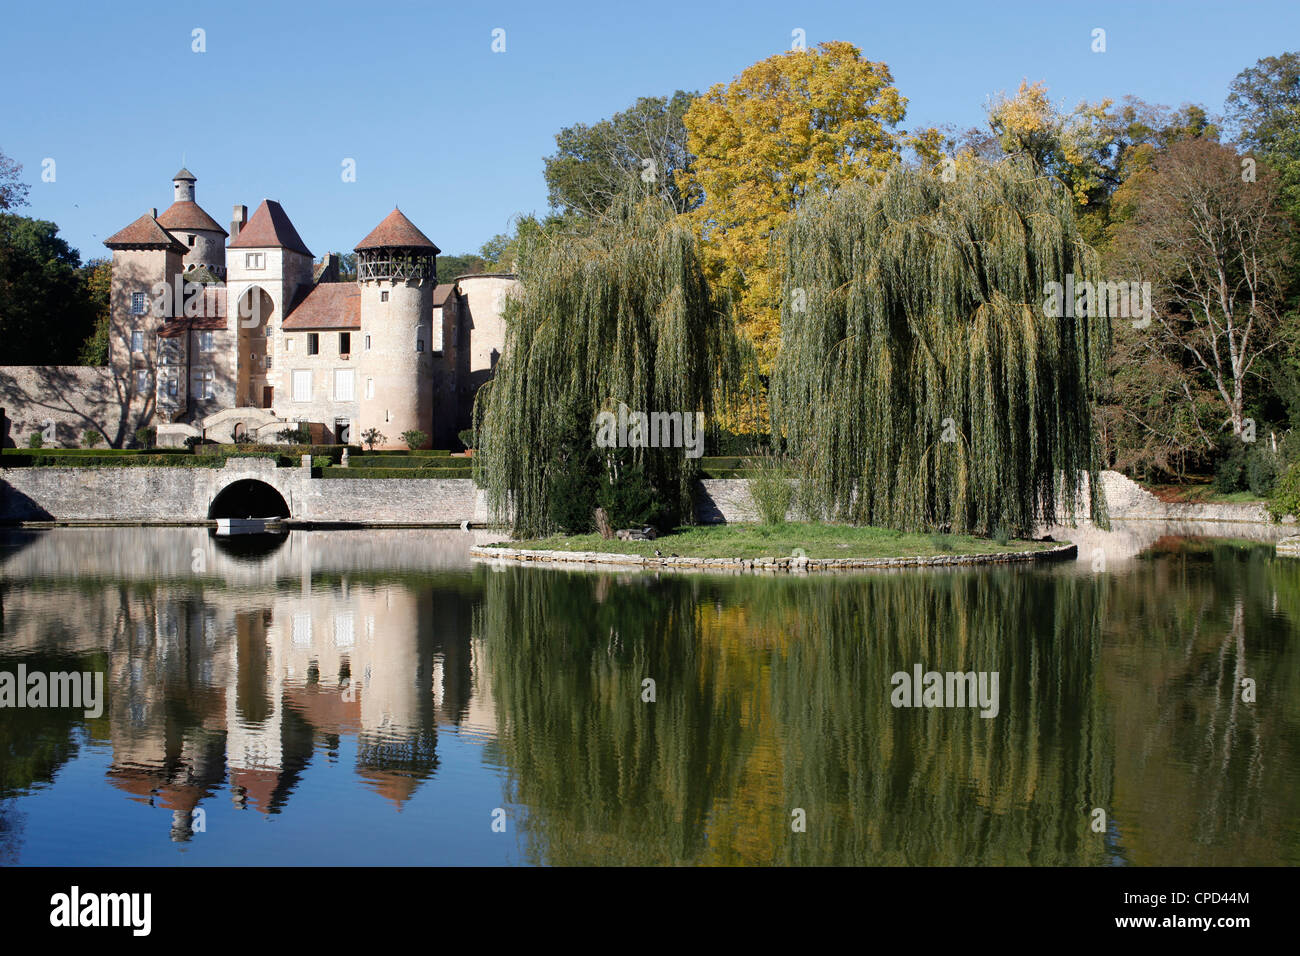 Sercy castle, dating from the 15th century, Sercy, Saone-et-Loire, Burgundy, France, Europe - Stock Image